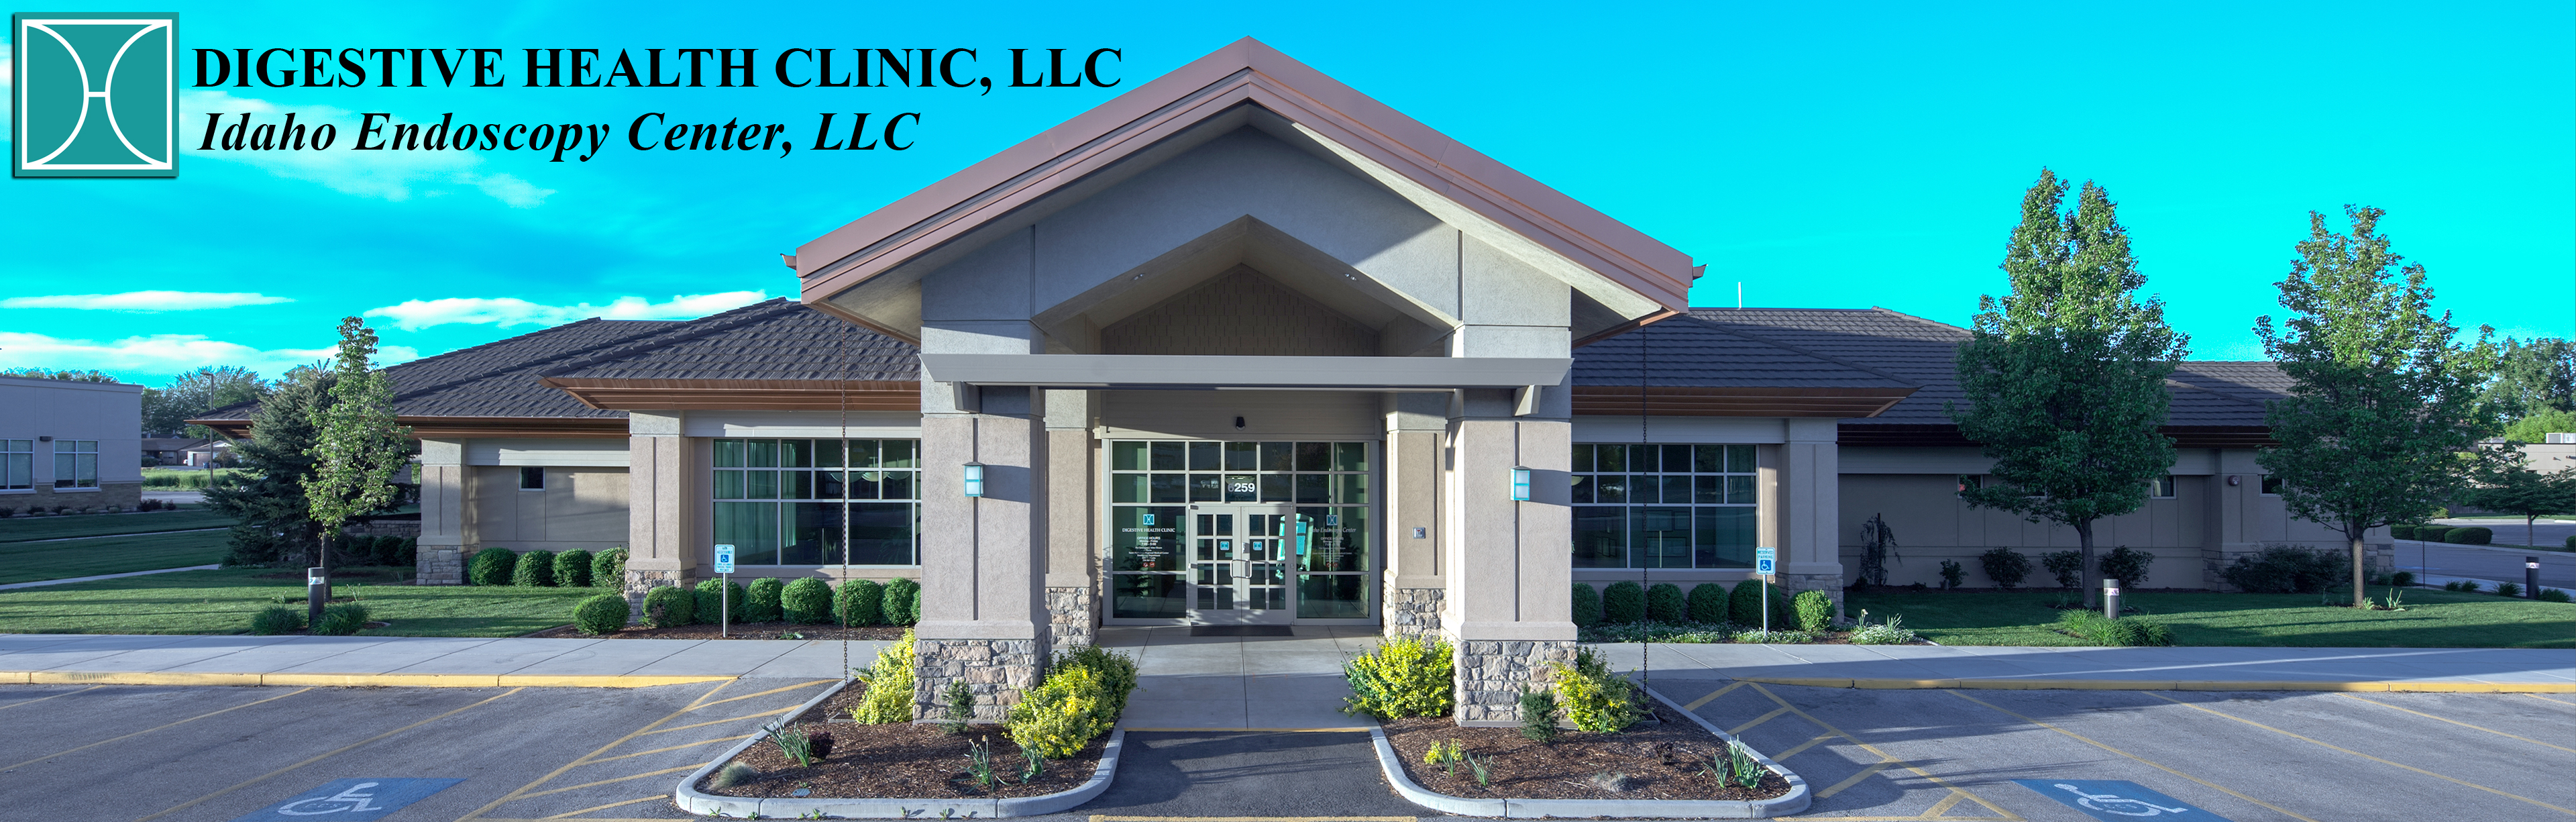 Diverticulosis – Digestive Health Clinic, LLC